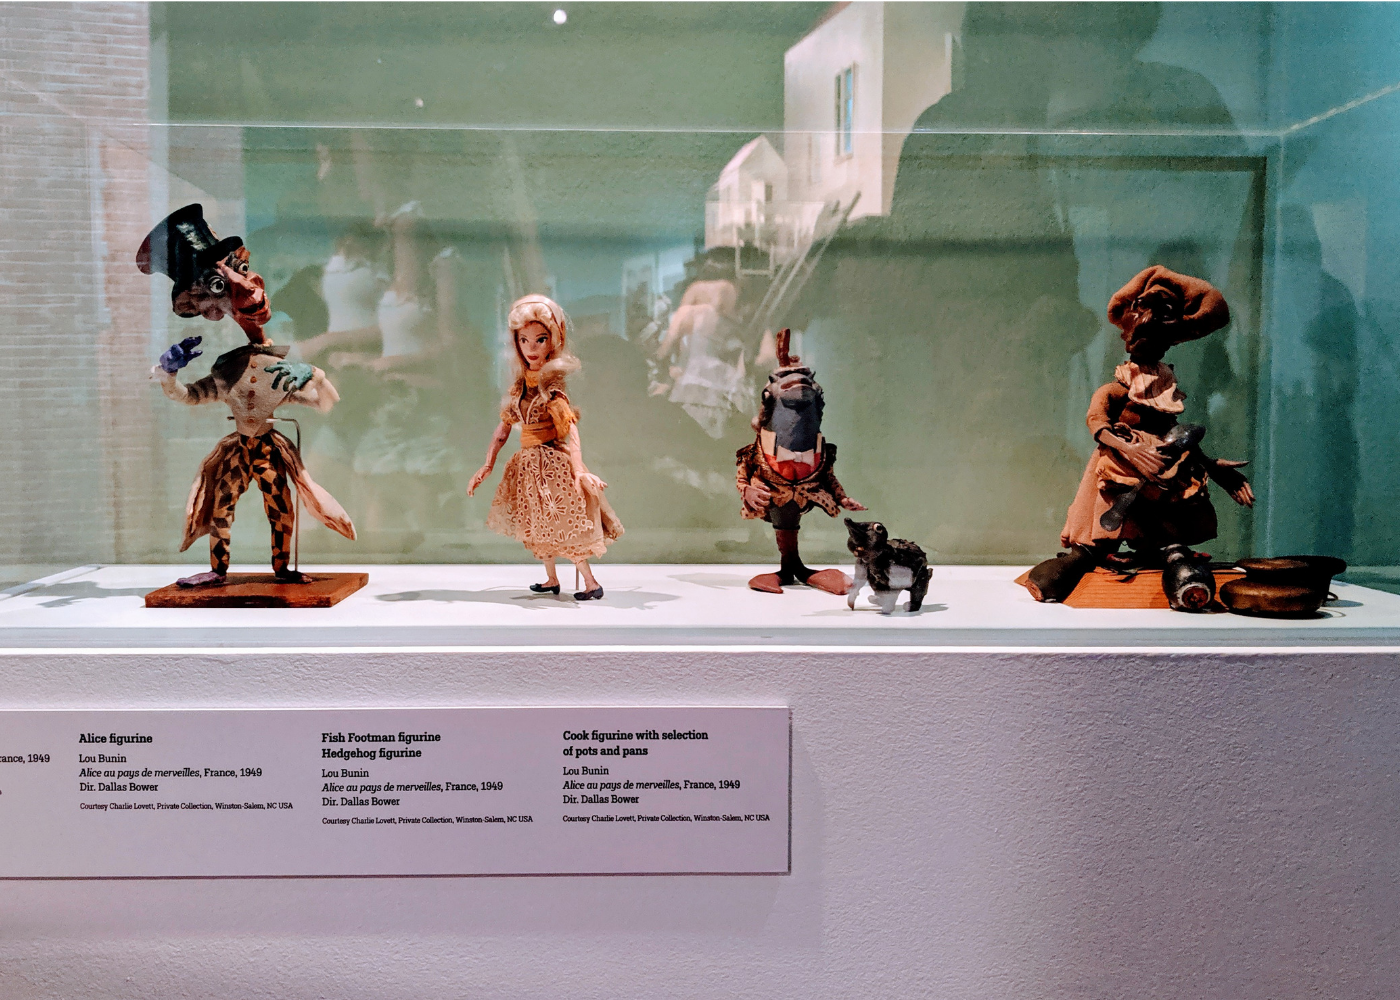 Love fantasy, will explore? Fall into Wonderland at the ArtScience Museum